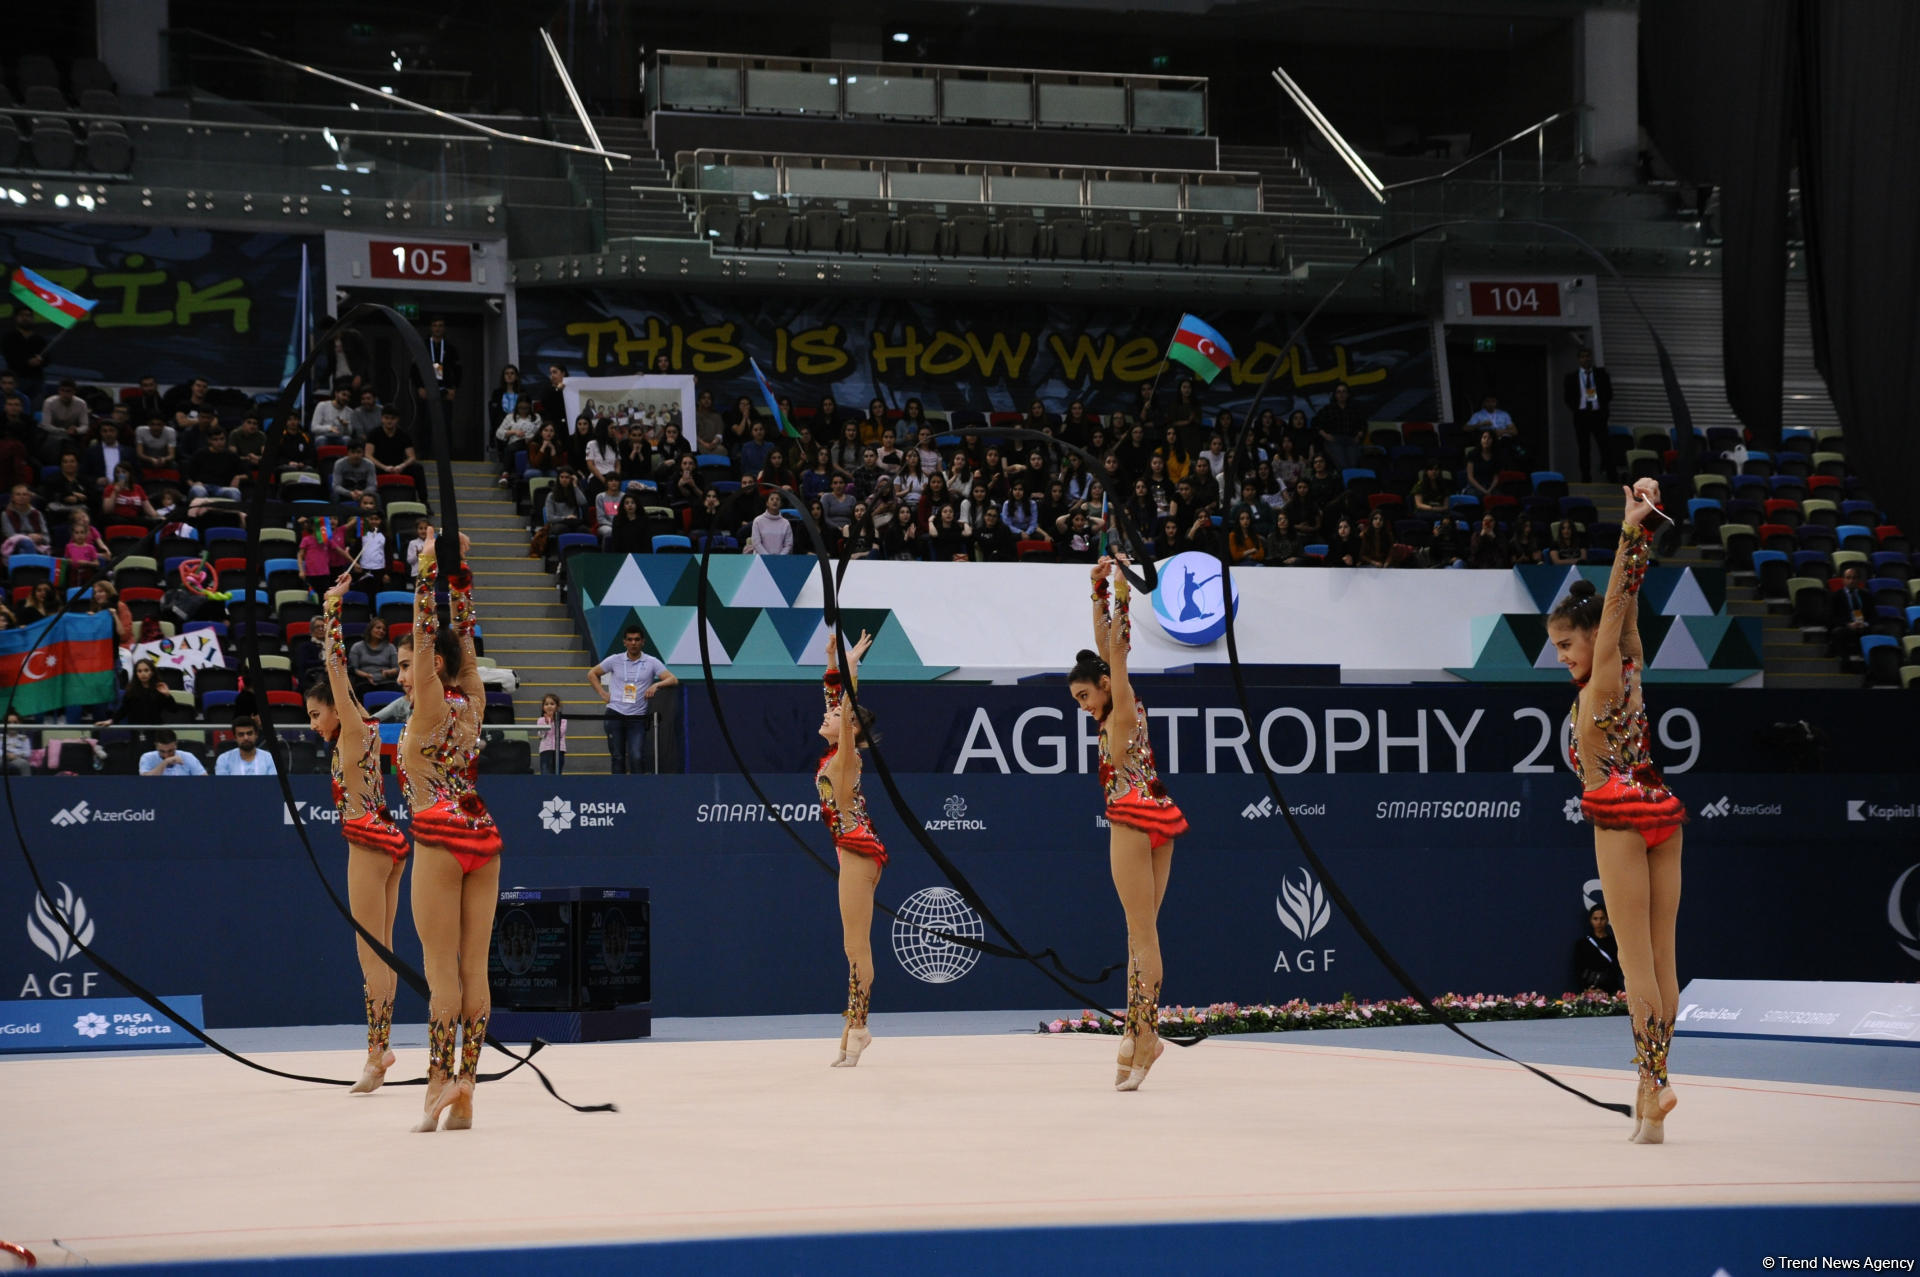 Azerbaijani team grabs gold in group exercises with five hoops at AGF Junior Trophy